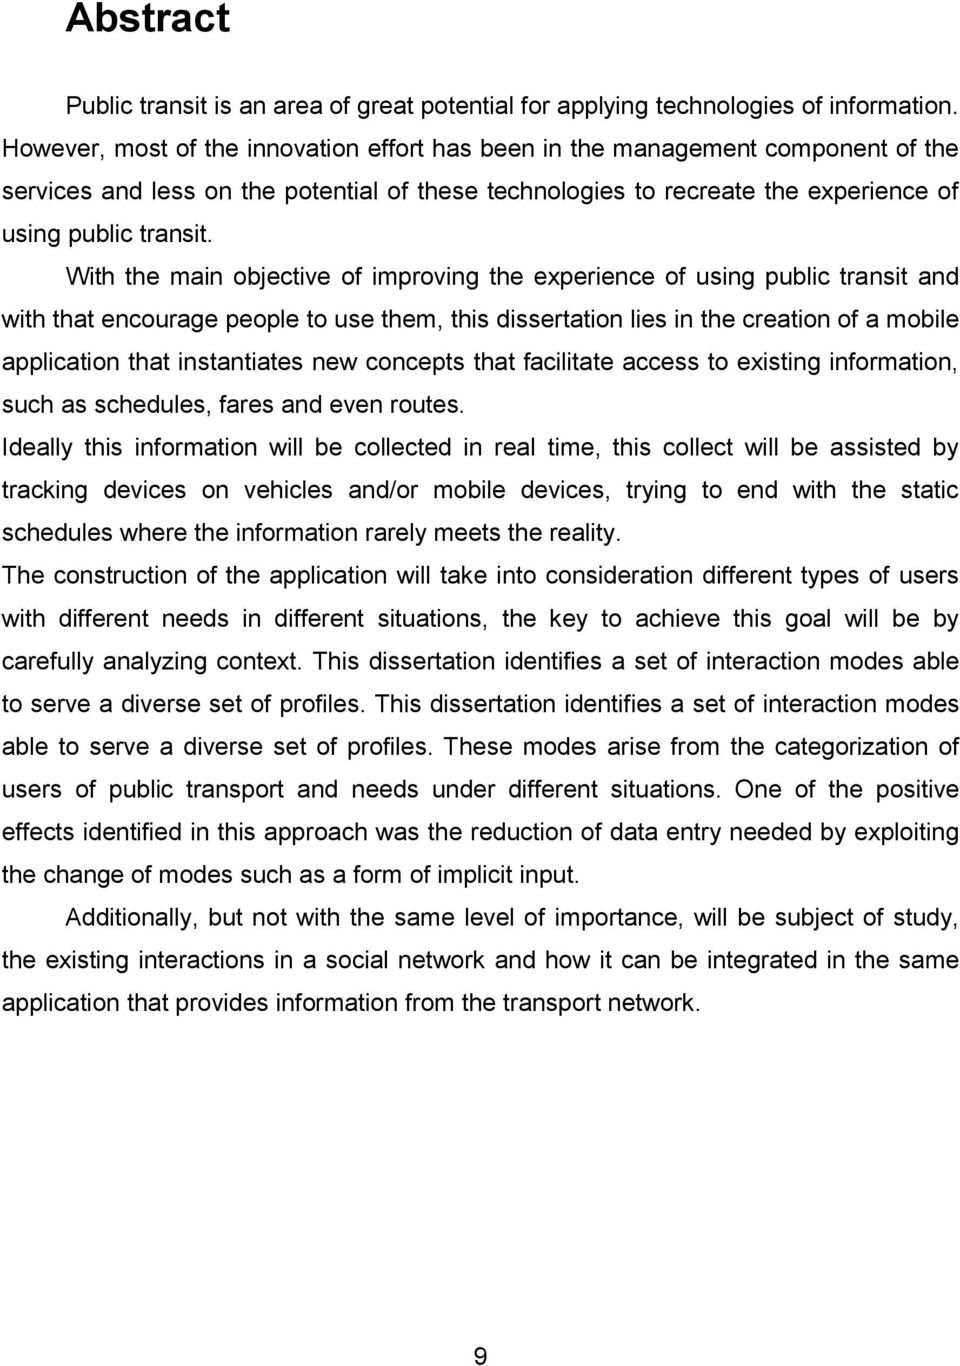 With the main objective of improving the experience of using public transit and with that encourage people to use them, this dissertation lies in the creation of a mobile application that